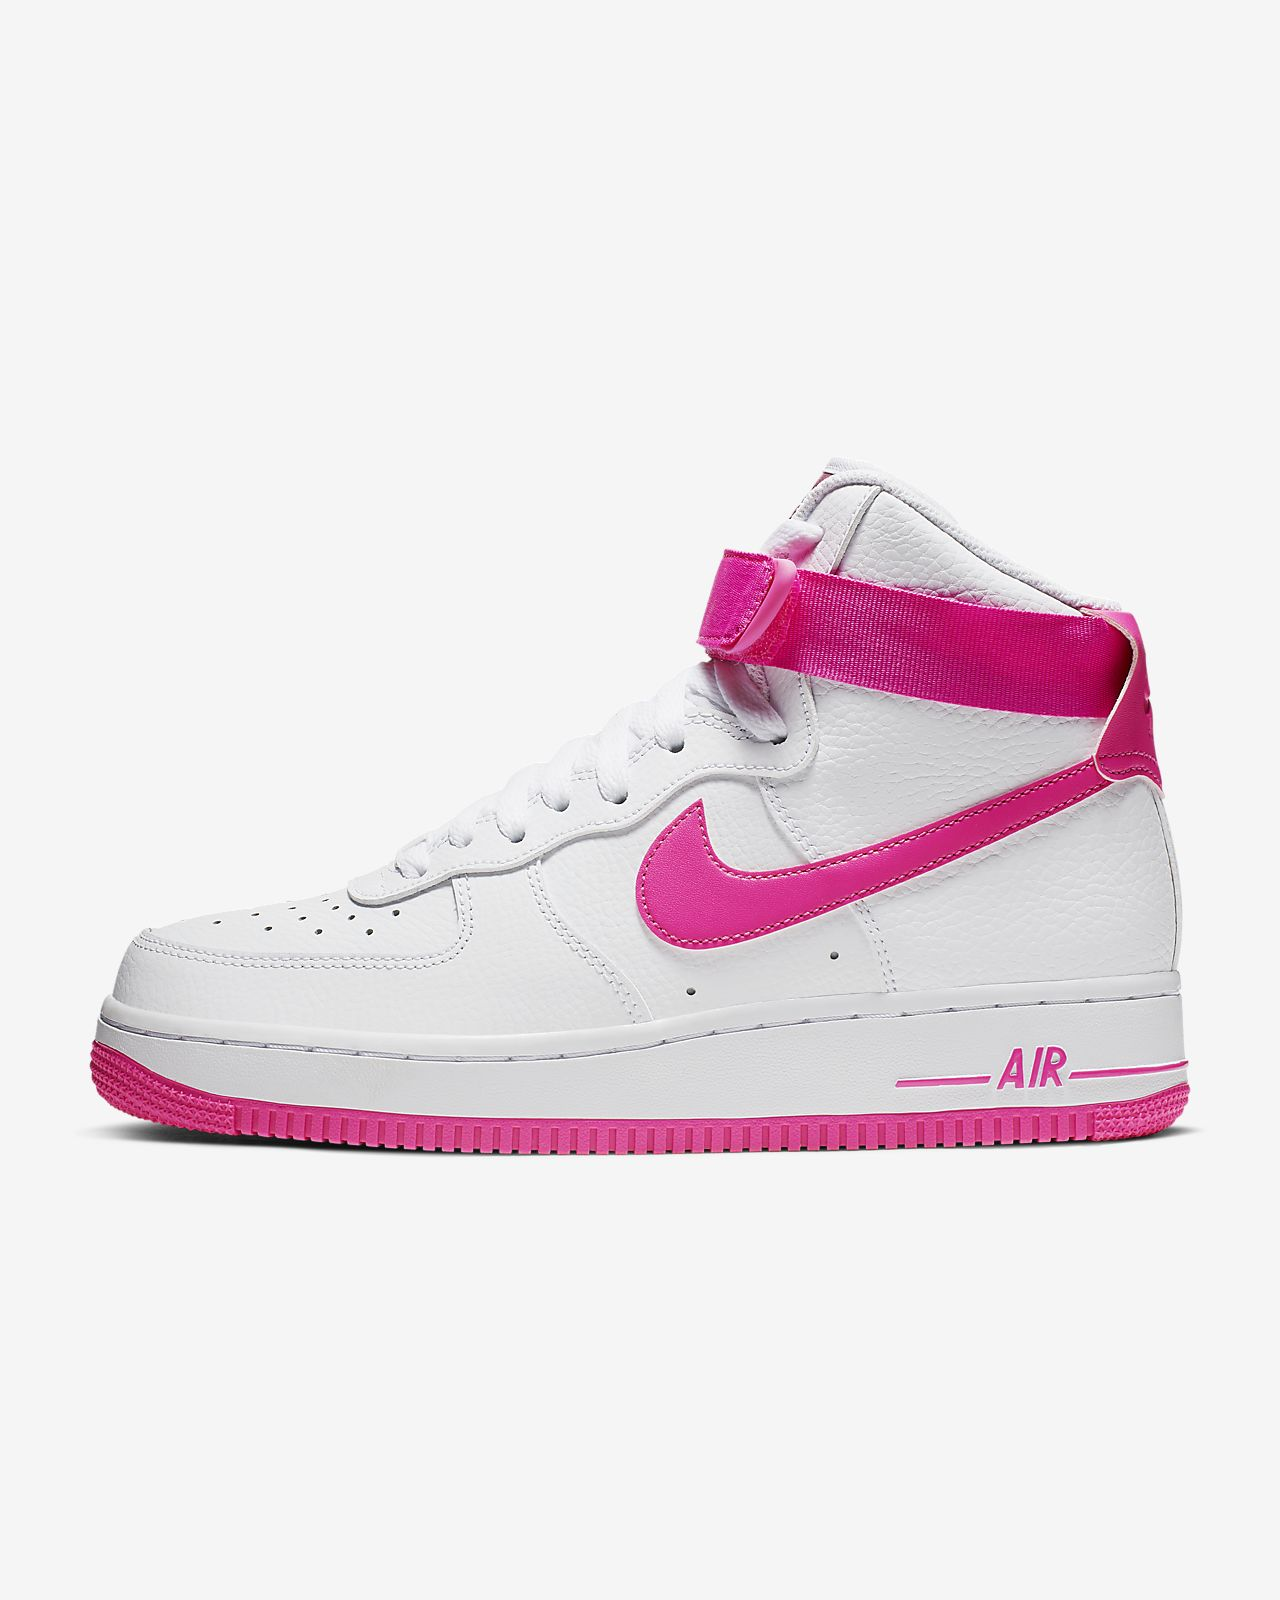 9c75b4ec4 Buty damskie Nike Air Force 1 High 08 LE. Nike.com PL